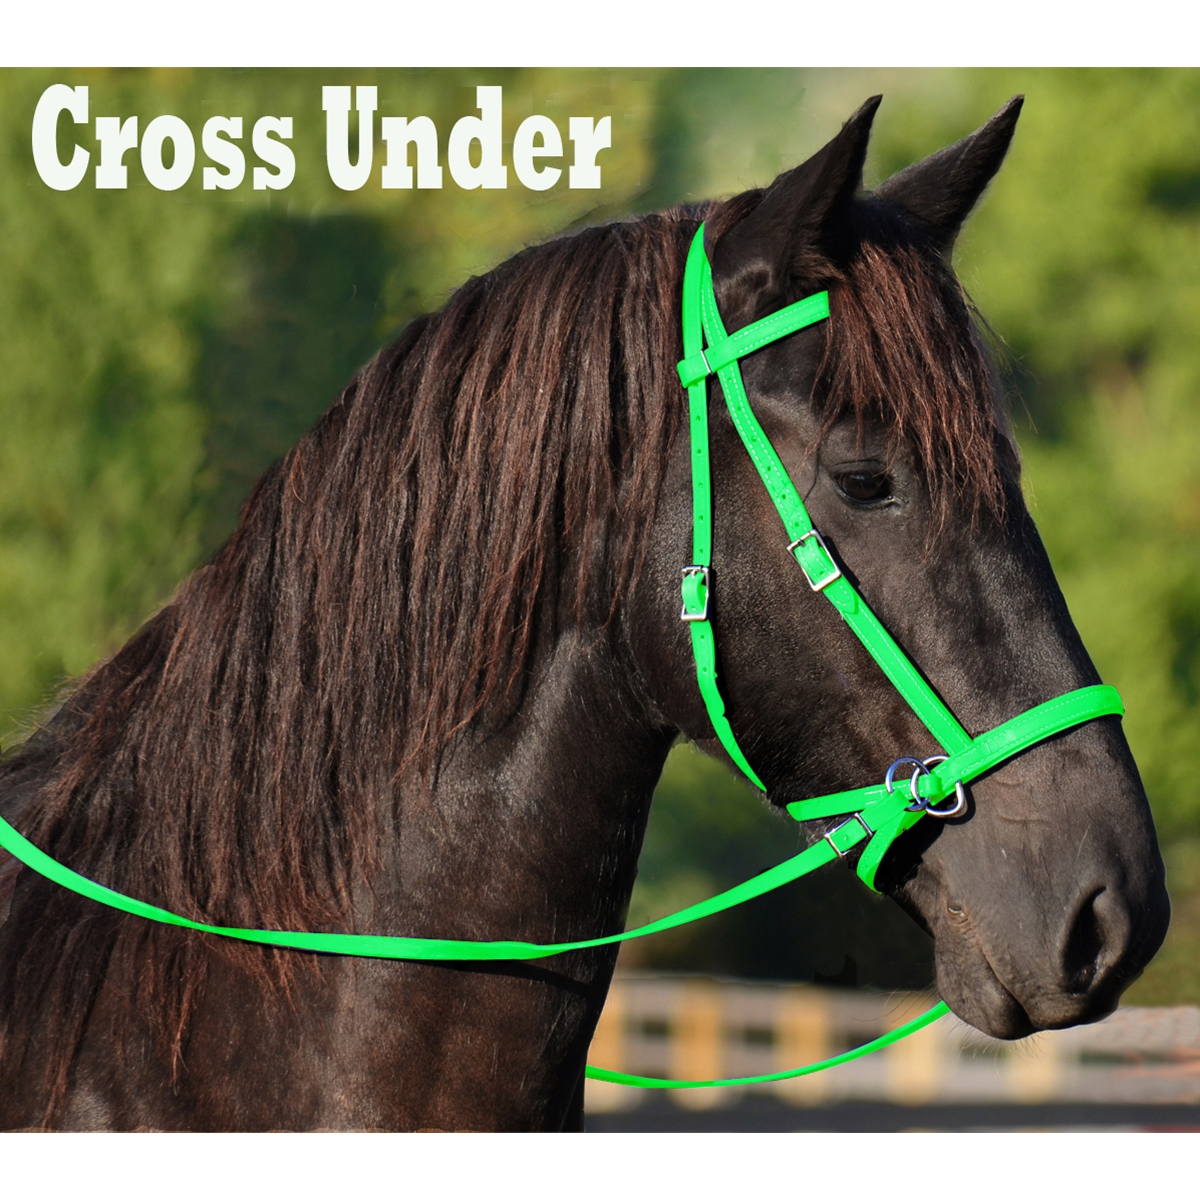 Lime Green 2 In 1 Bitless Bridle Made From Beta Biothane Two Horse Tack